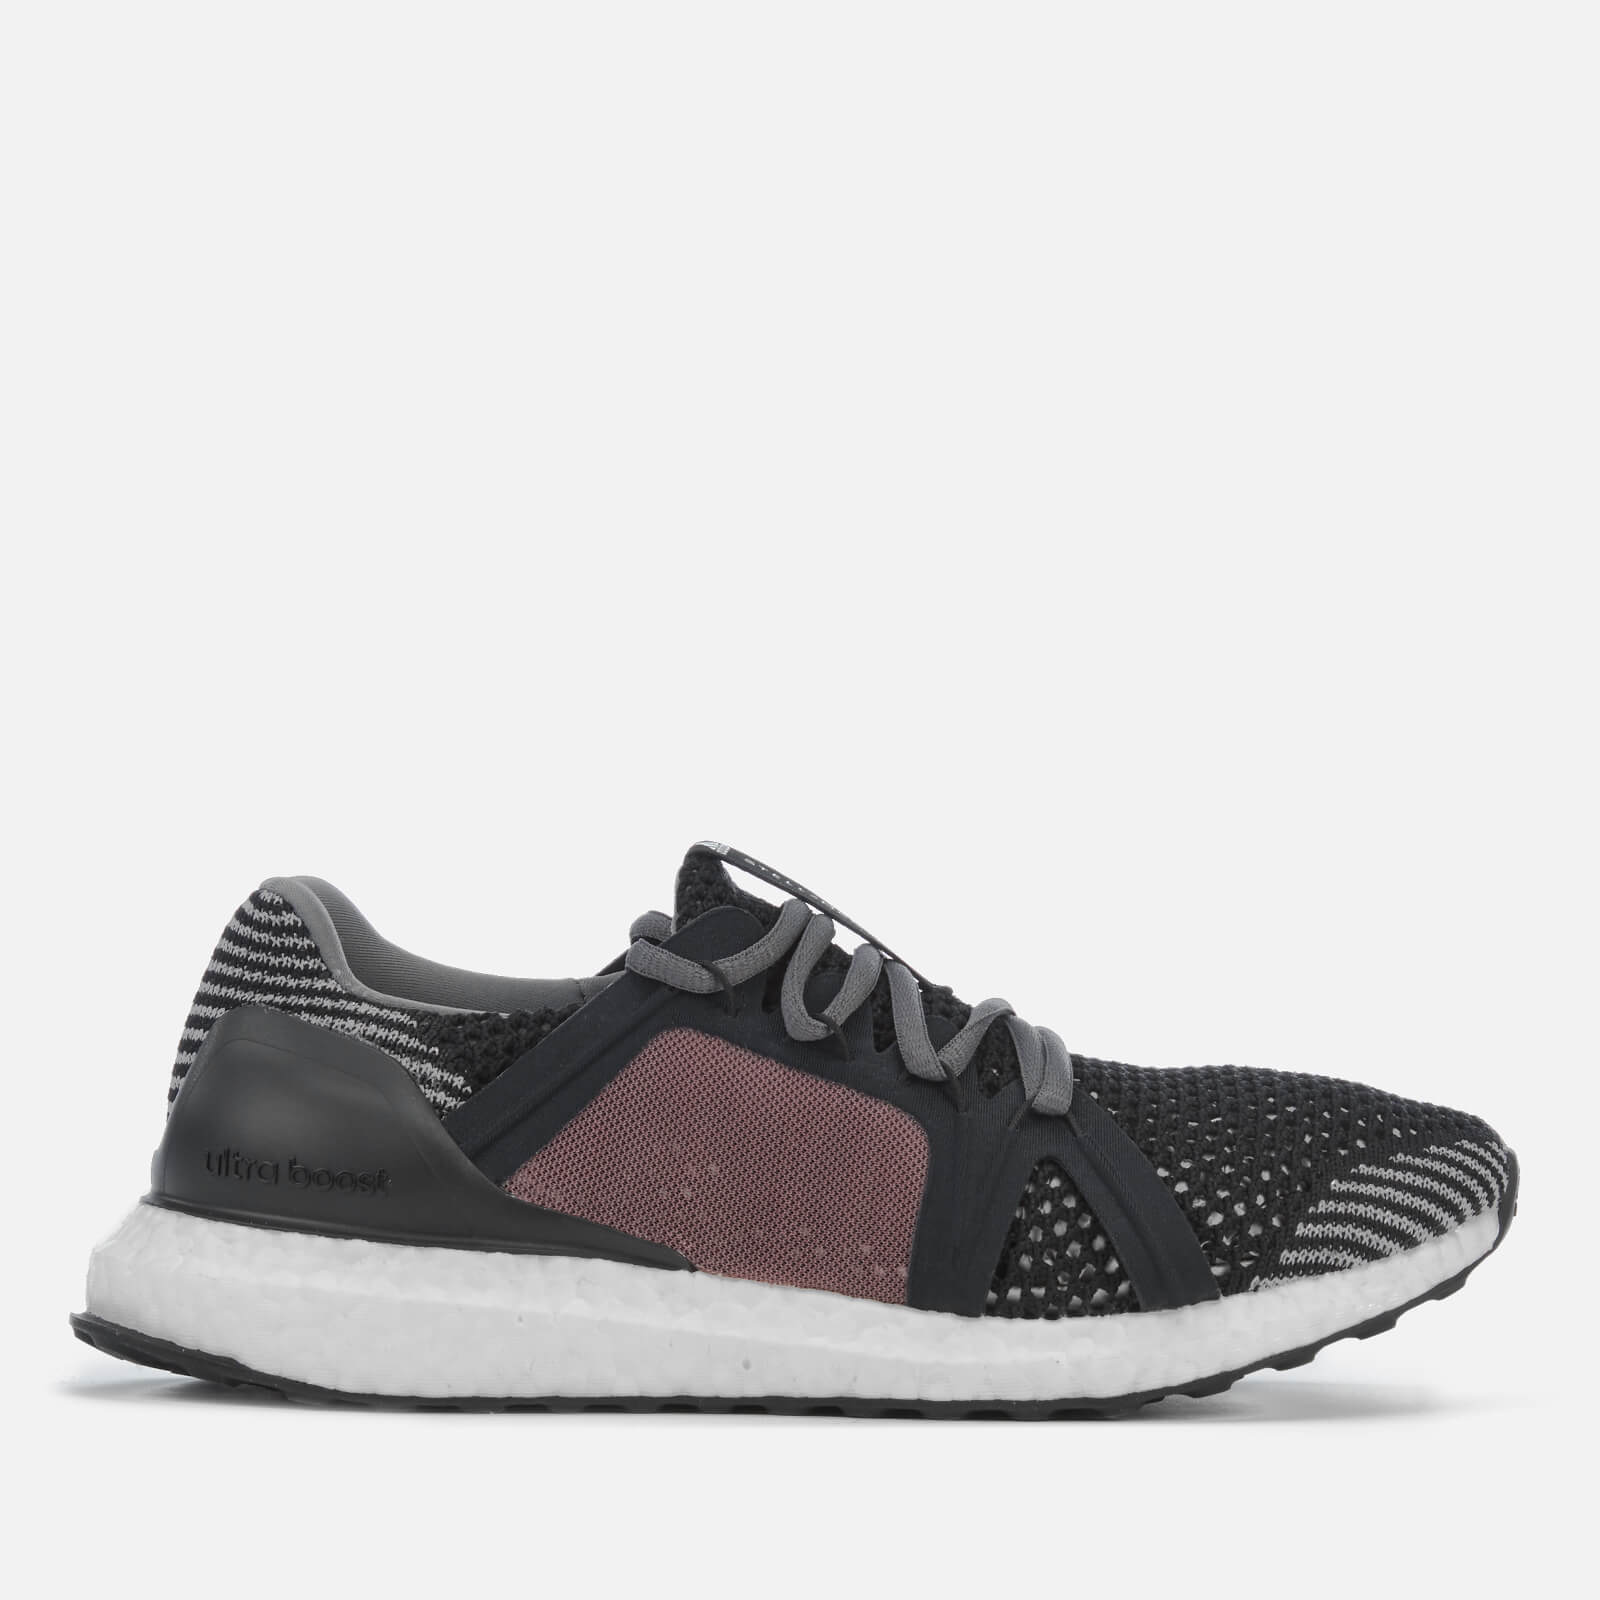 new arrivals 7930c 3bf6a adidas by Stella McCartney Women's Ultraboost Trainers - Core Black/Pink/Red